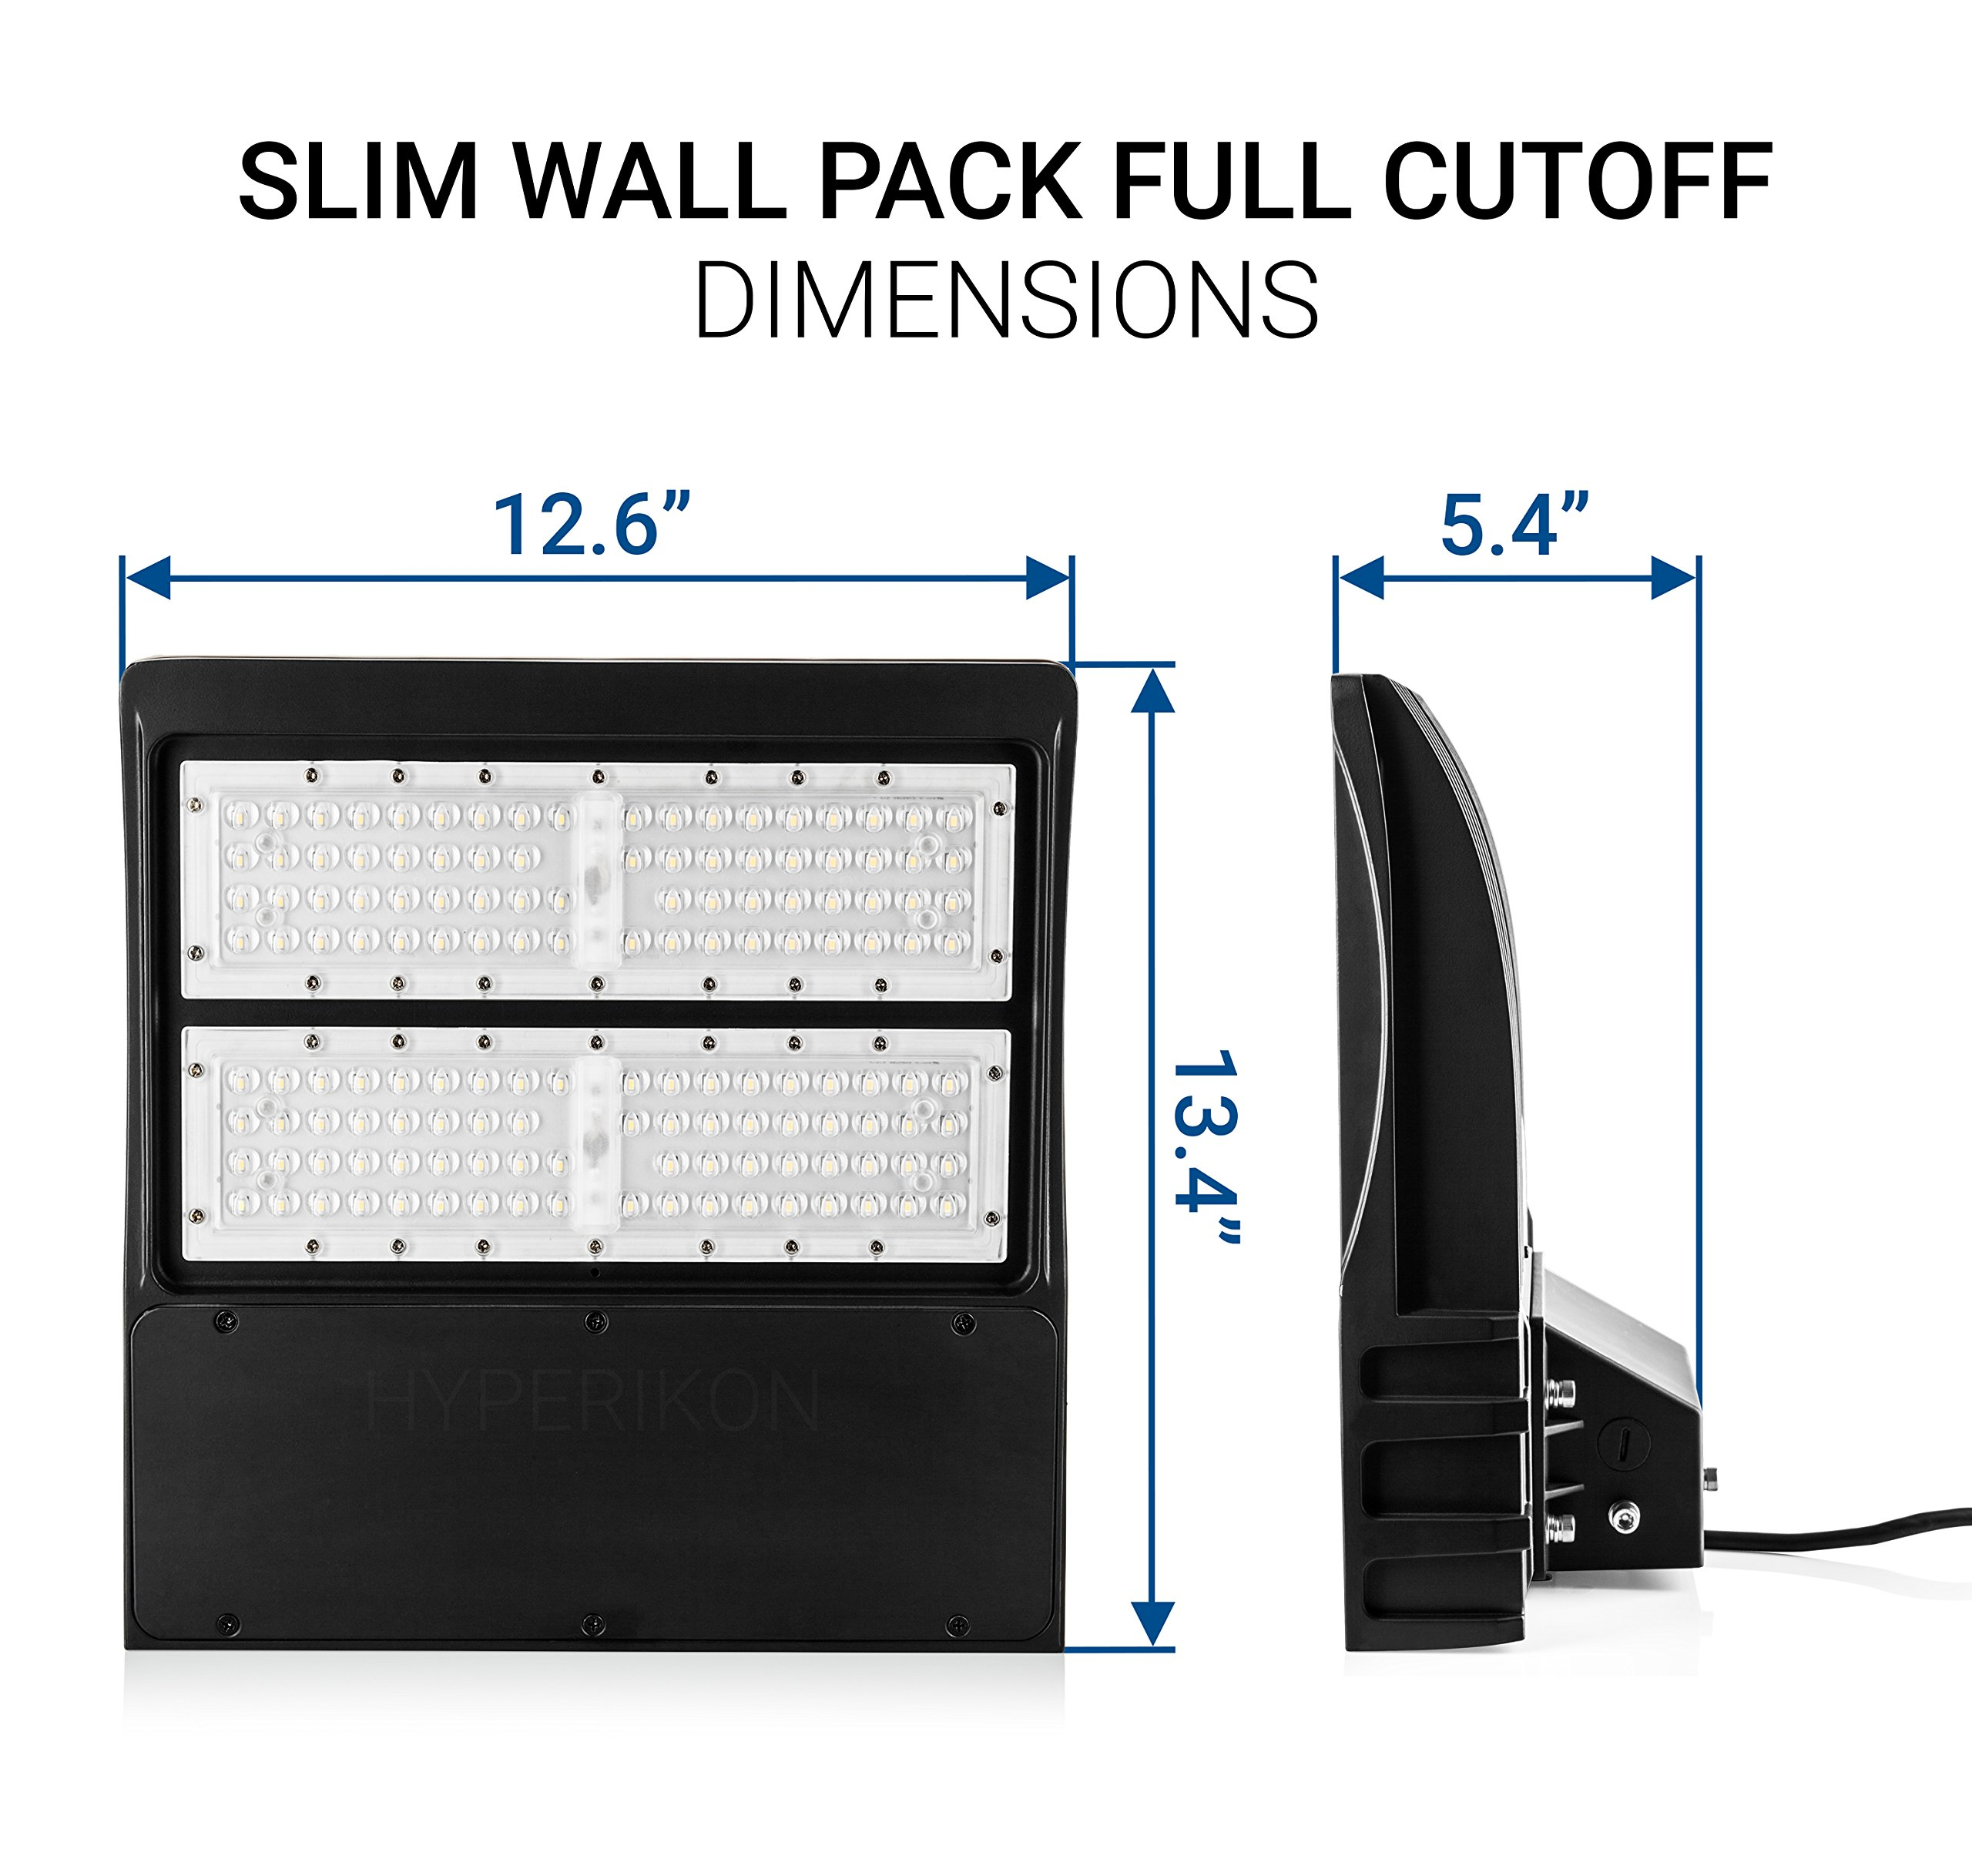 Hyperikon LED Wall Pack Slim 80W, 5000K (Crystal White Glow),10400lm,Mounted Base,IP65 Waterproof Dustproof,Full Cutoff–Outdoor Wall Packfor Security Light, Professional Use, Building Light